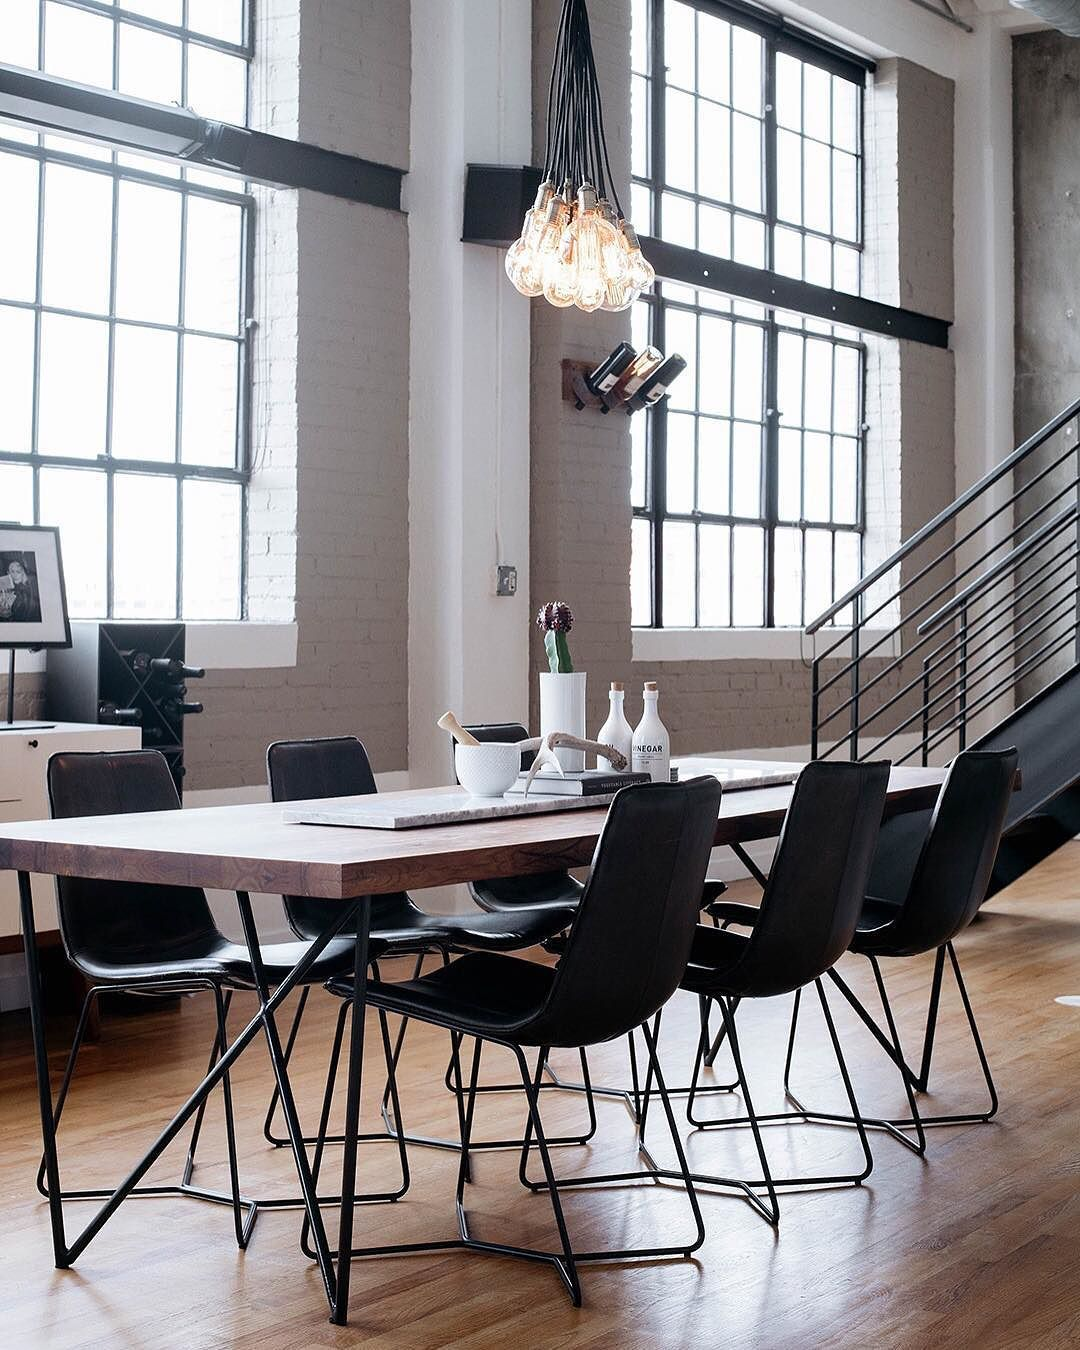 Take a look at this salt lake city loft designed by mabeadesign